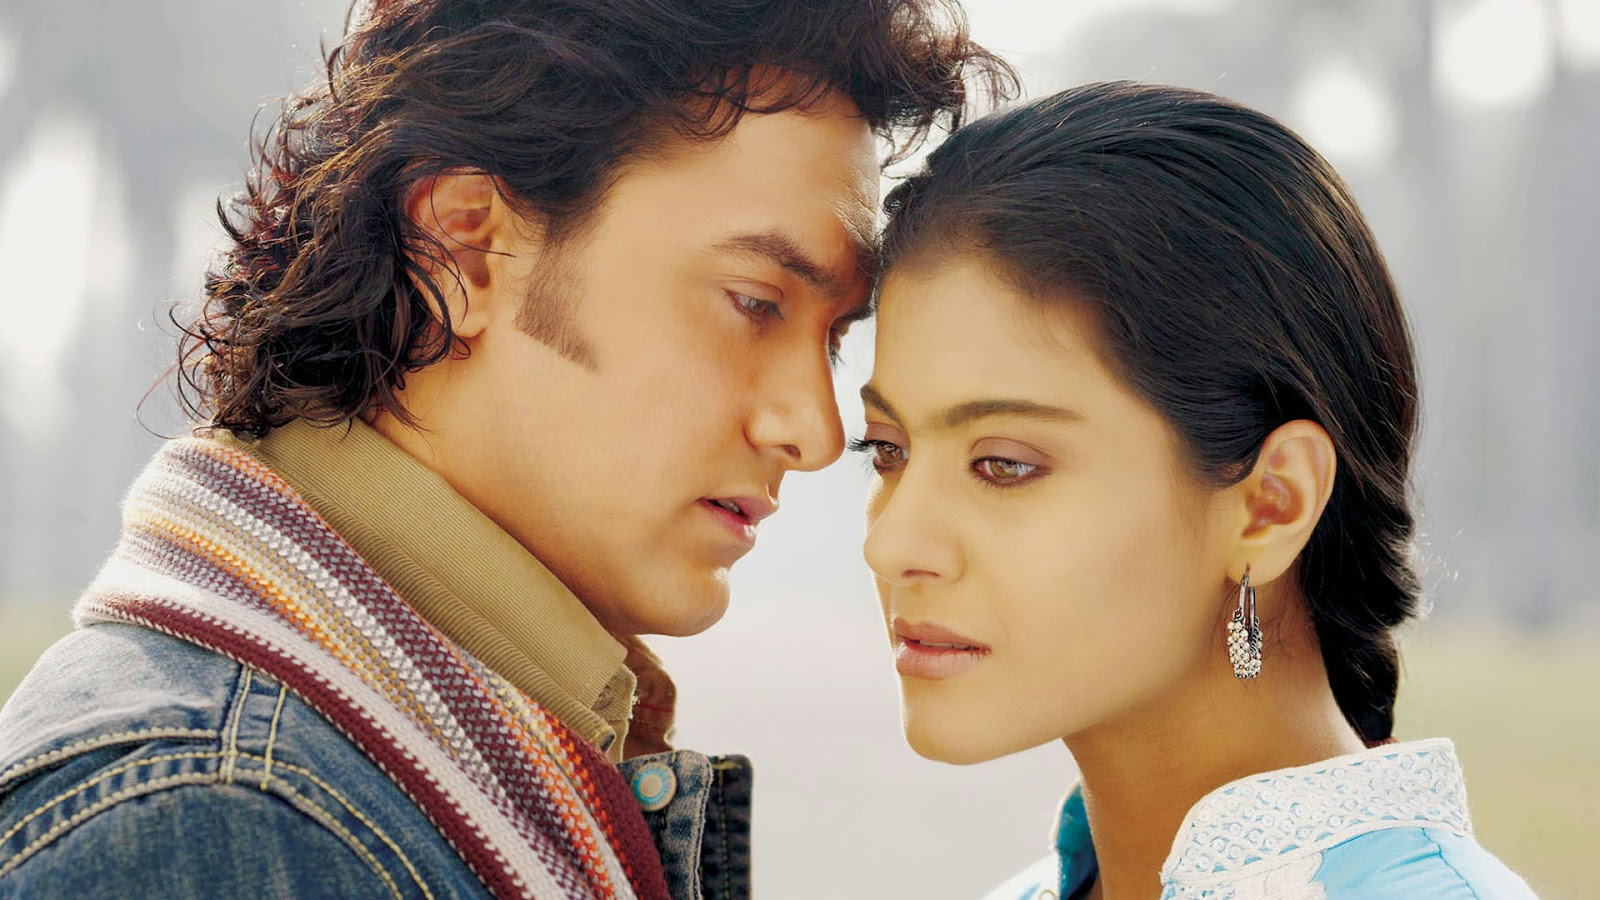 Aamir khan dialogues from the hindi movie fanaa.